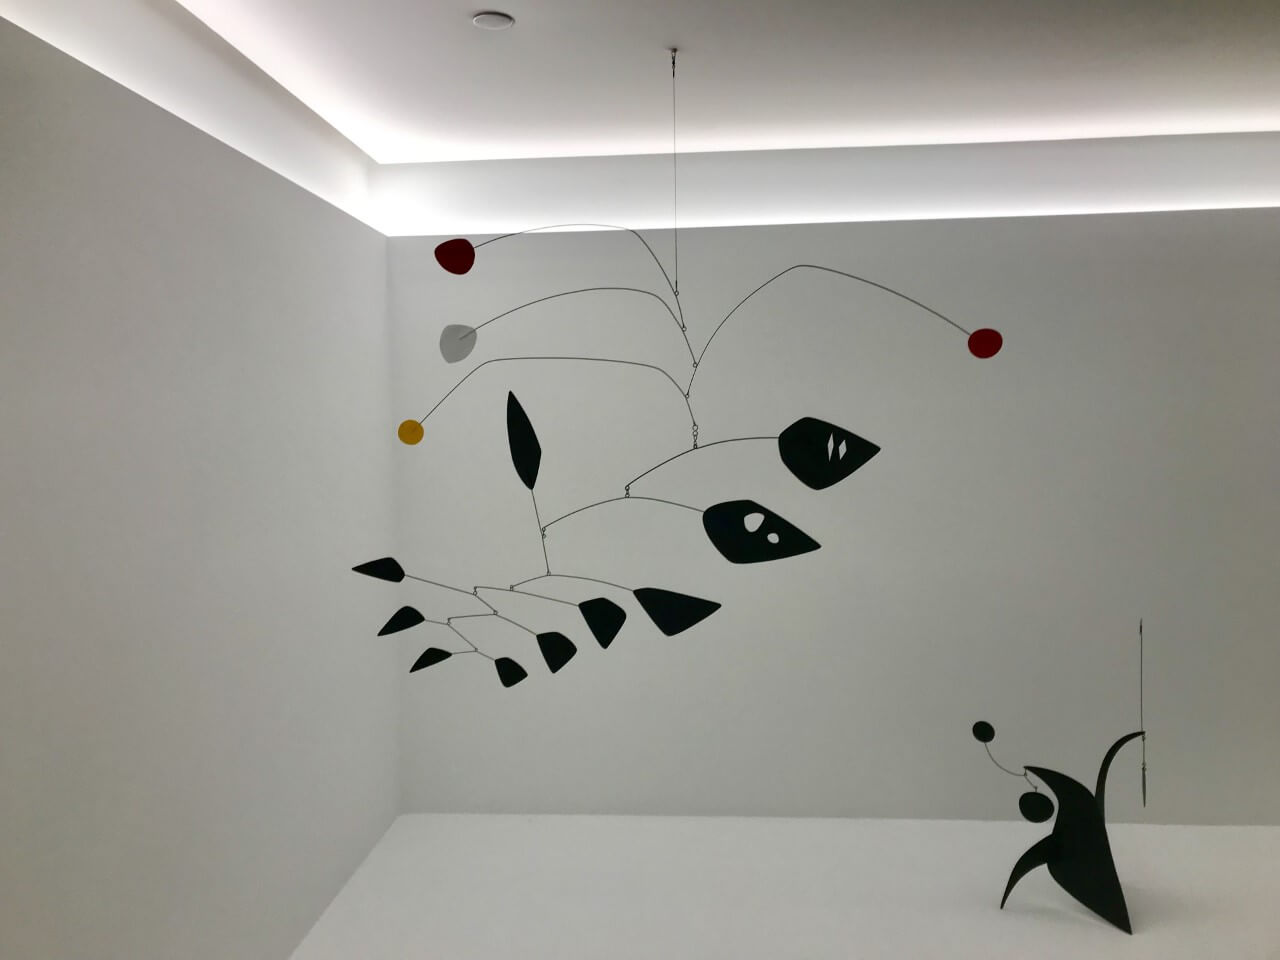 Sculpture by Alexander Calder at Hauswer & Wirth Los Angeles